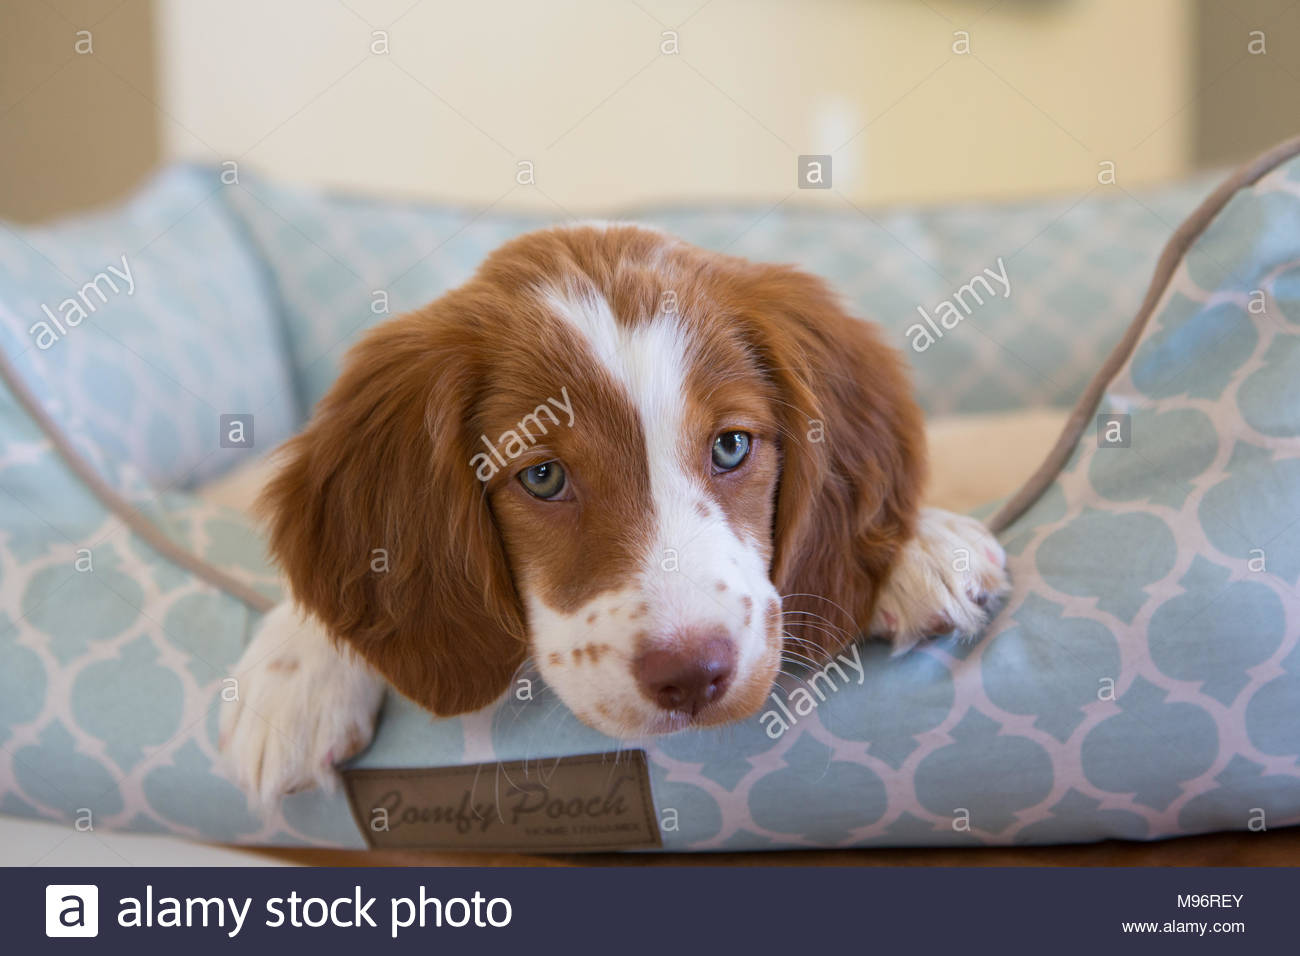 Close-up of brittany spaniel puppy peeking out of a blue dog bed - Stock Image